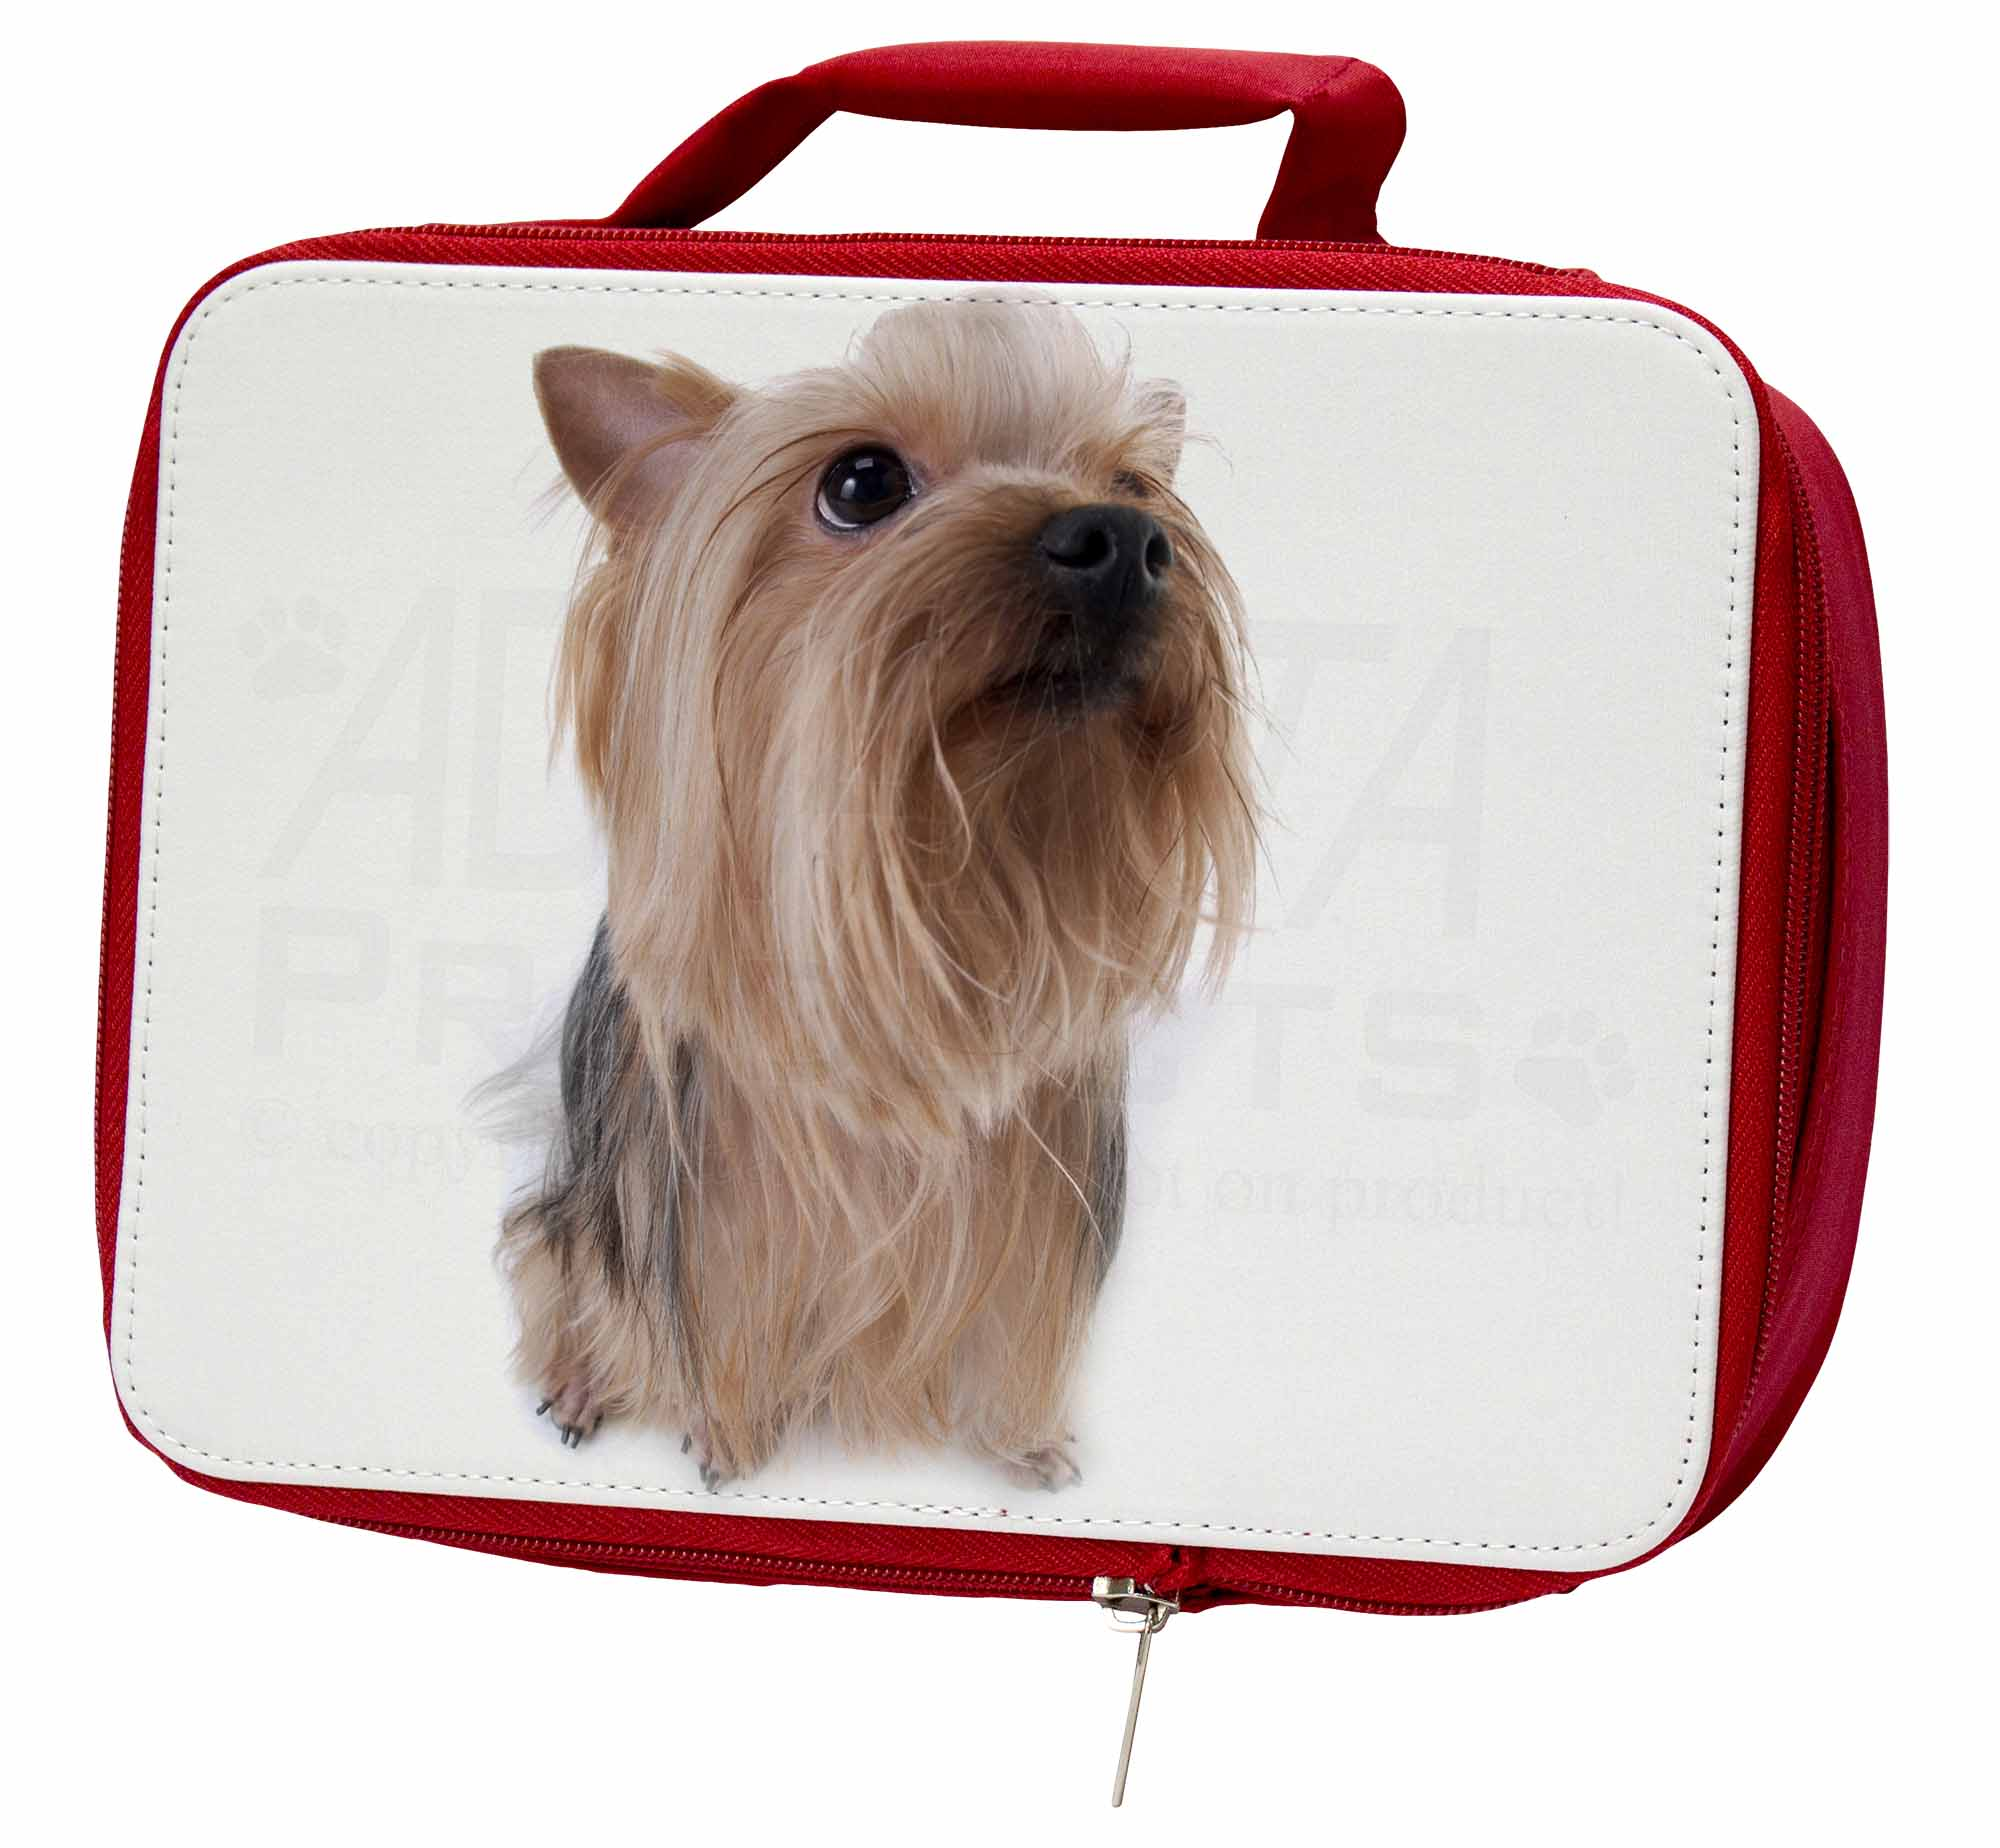 Yorkshire Terrier Insulated School Red School Insulated Lunch Box/Picnic Bag, AD-Y2LBR b8ff6b